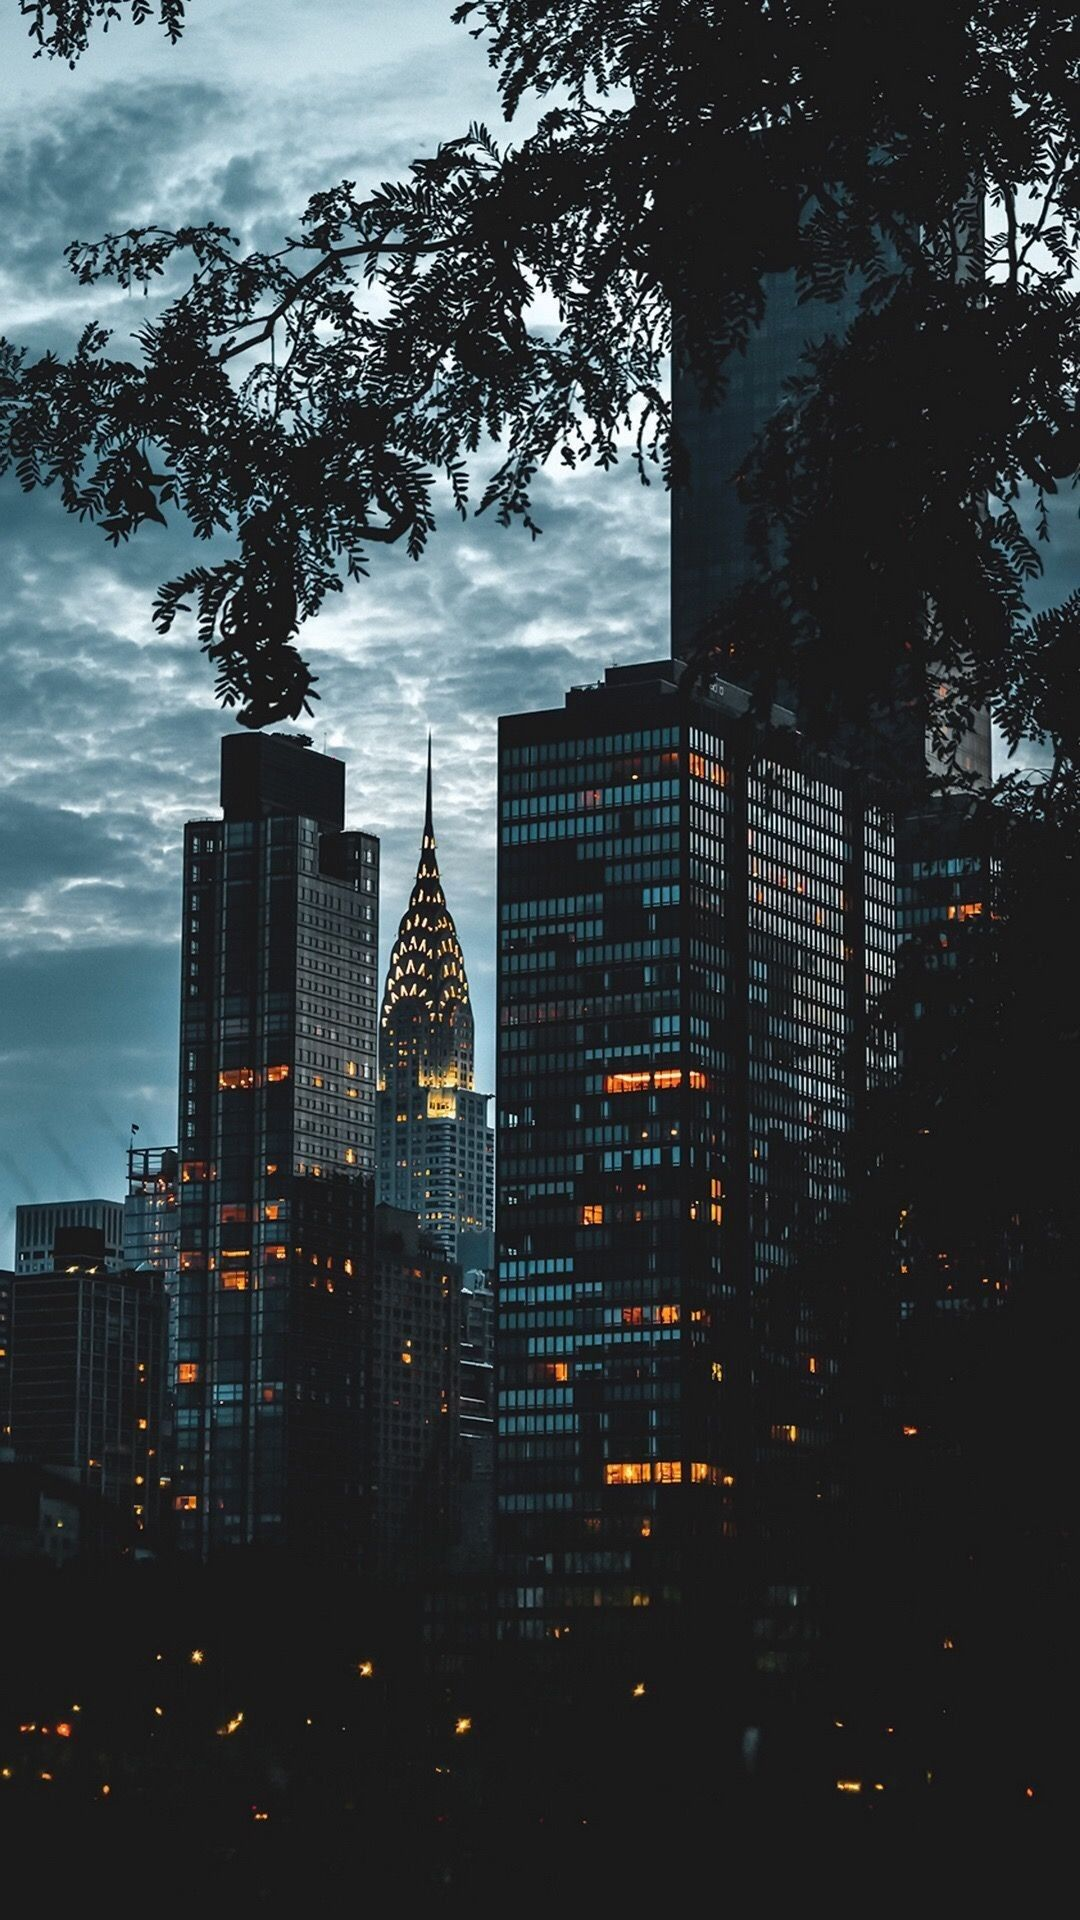 Ny In The Night Time For More Pins Bout Nyc Follow My Board New York City Nyc Landscape Photography Nature Landscape Photography City Wallpaper